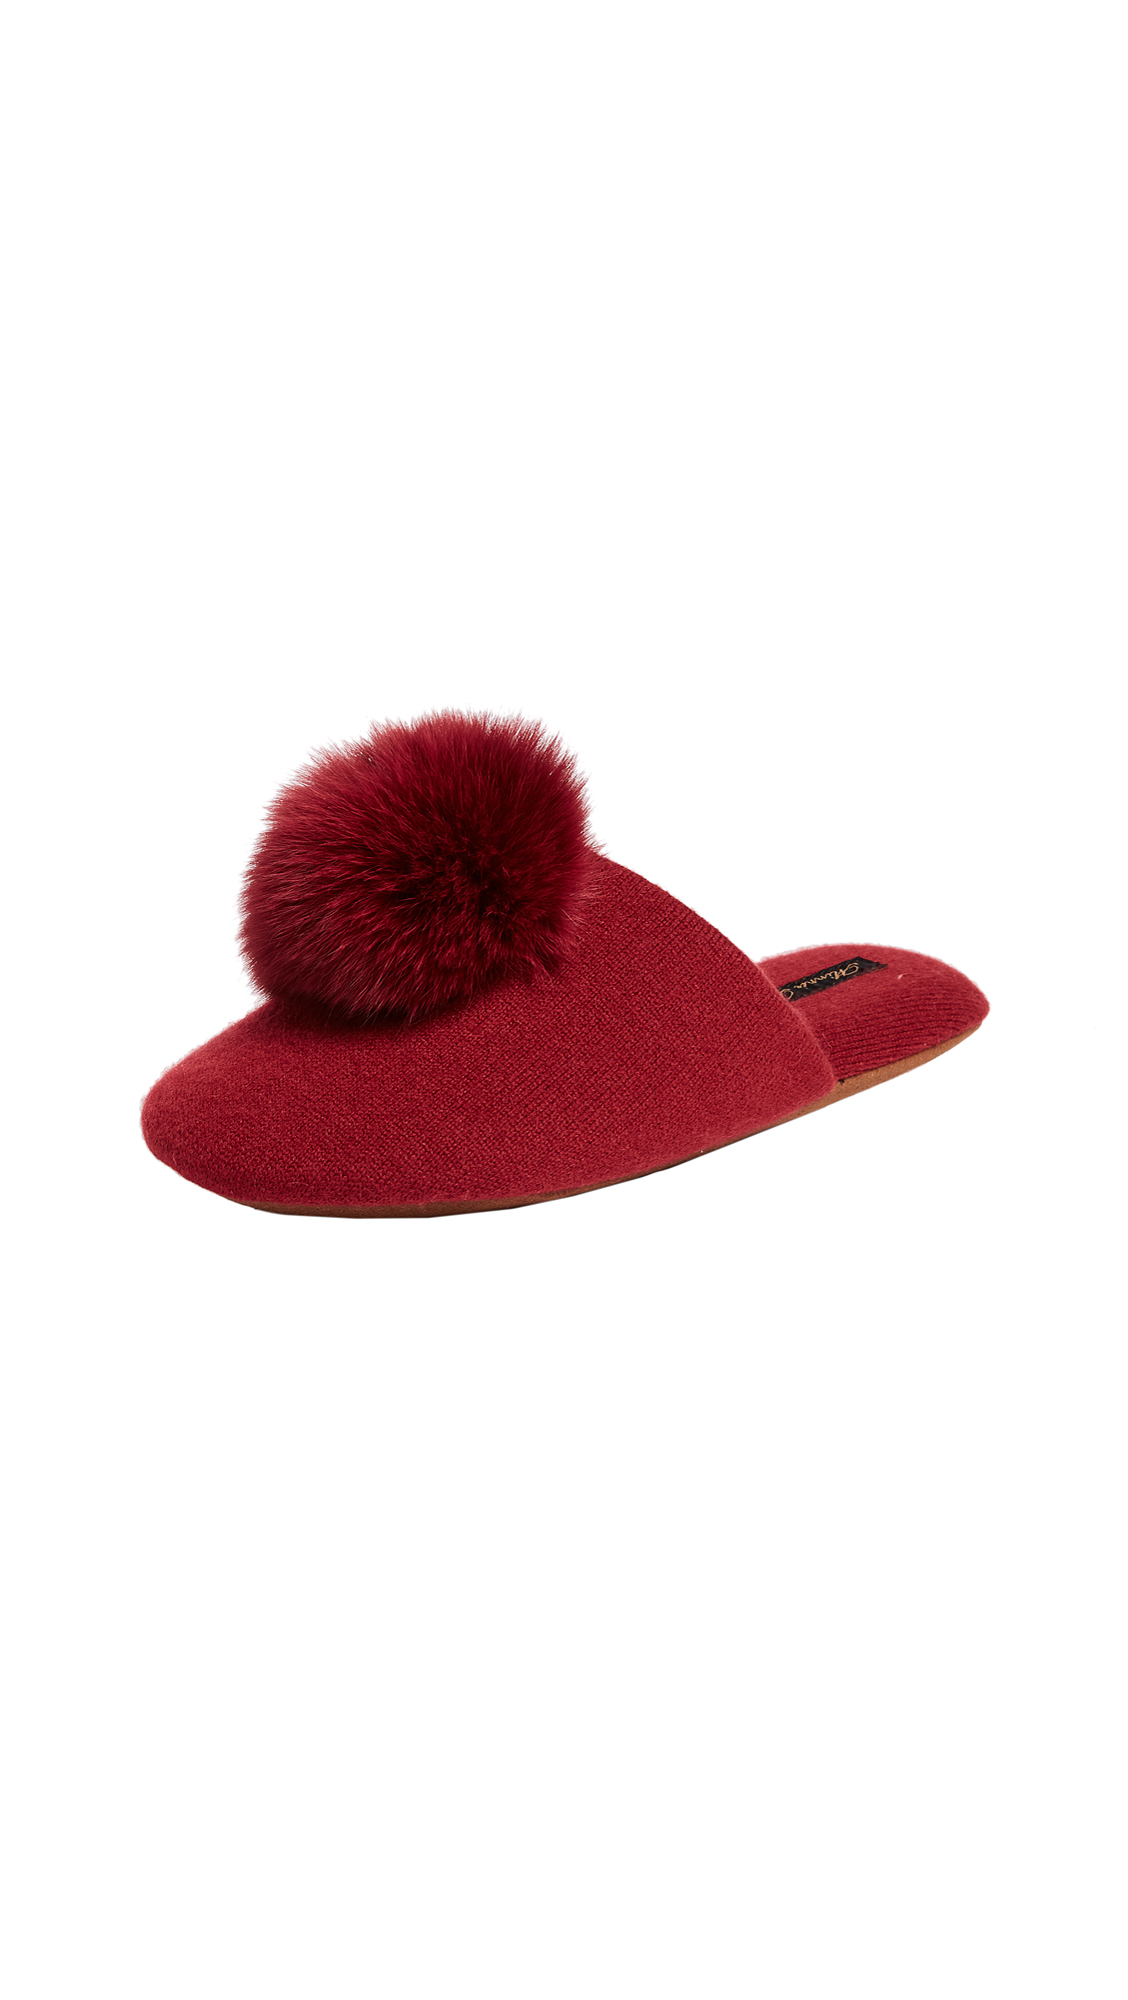 Minnie Rose Fox Pom Pom Slippers - Antique Red